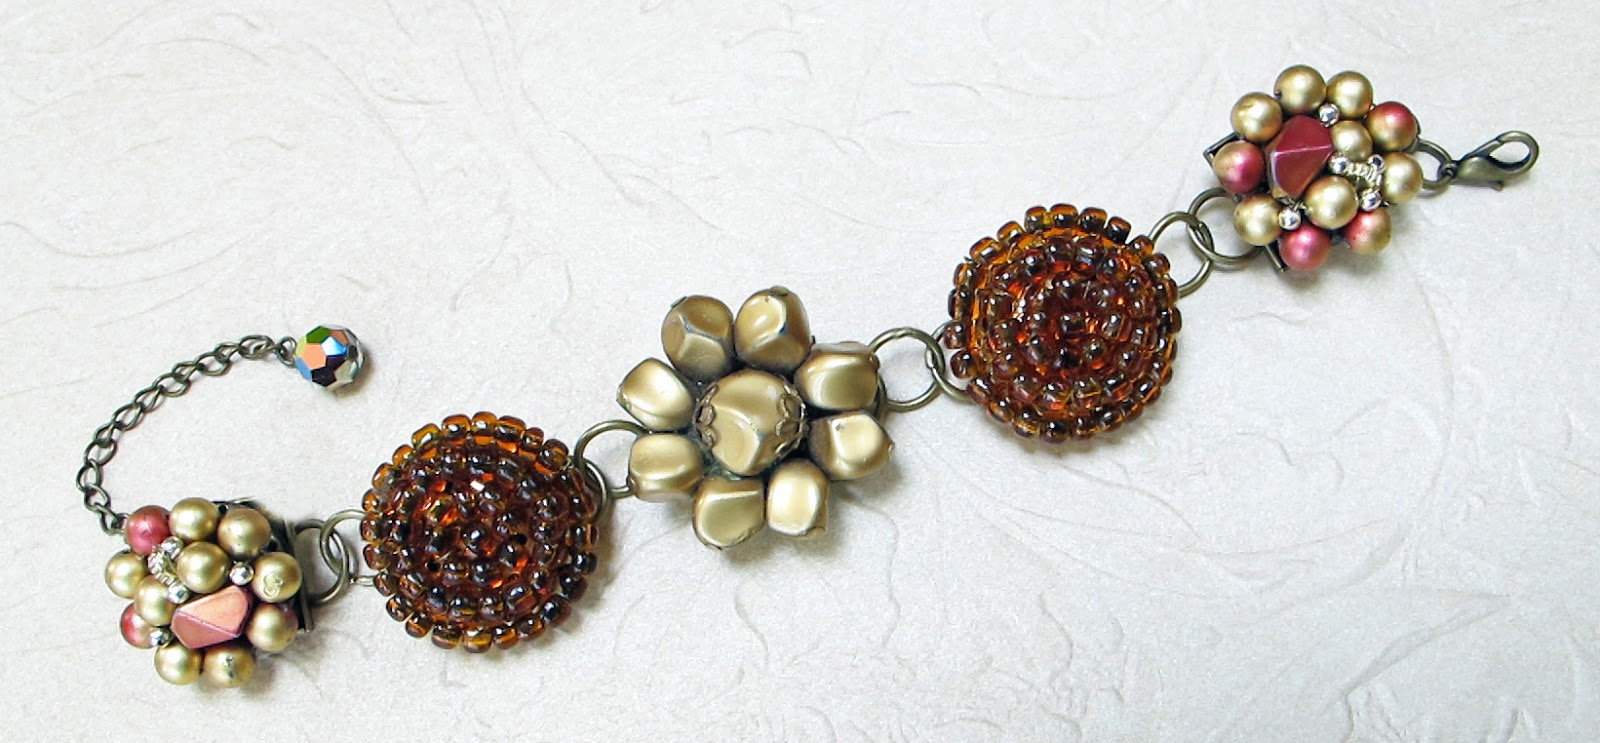 How to make vintage earring bracelet